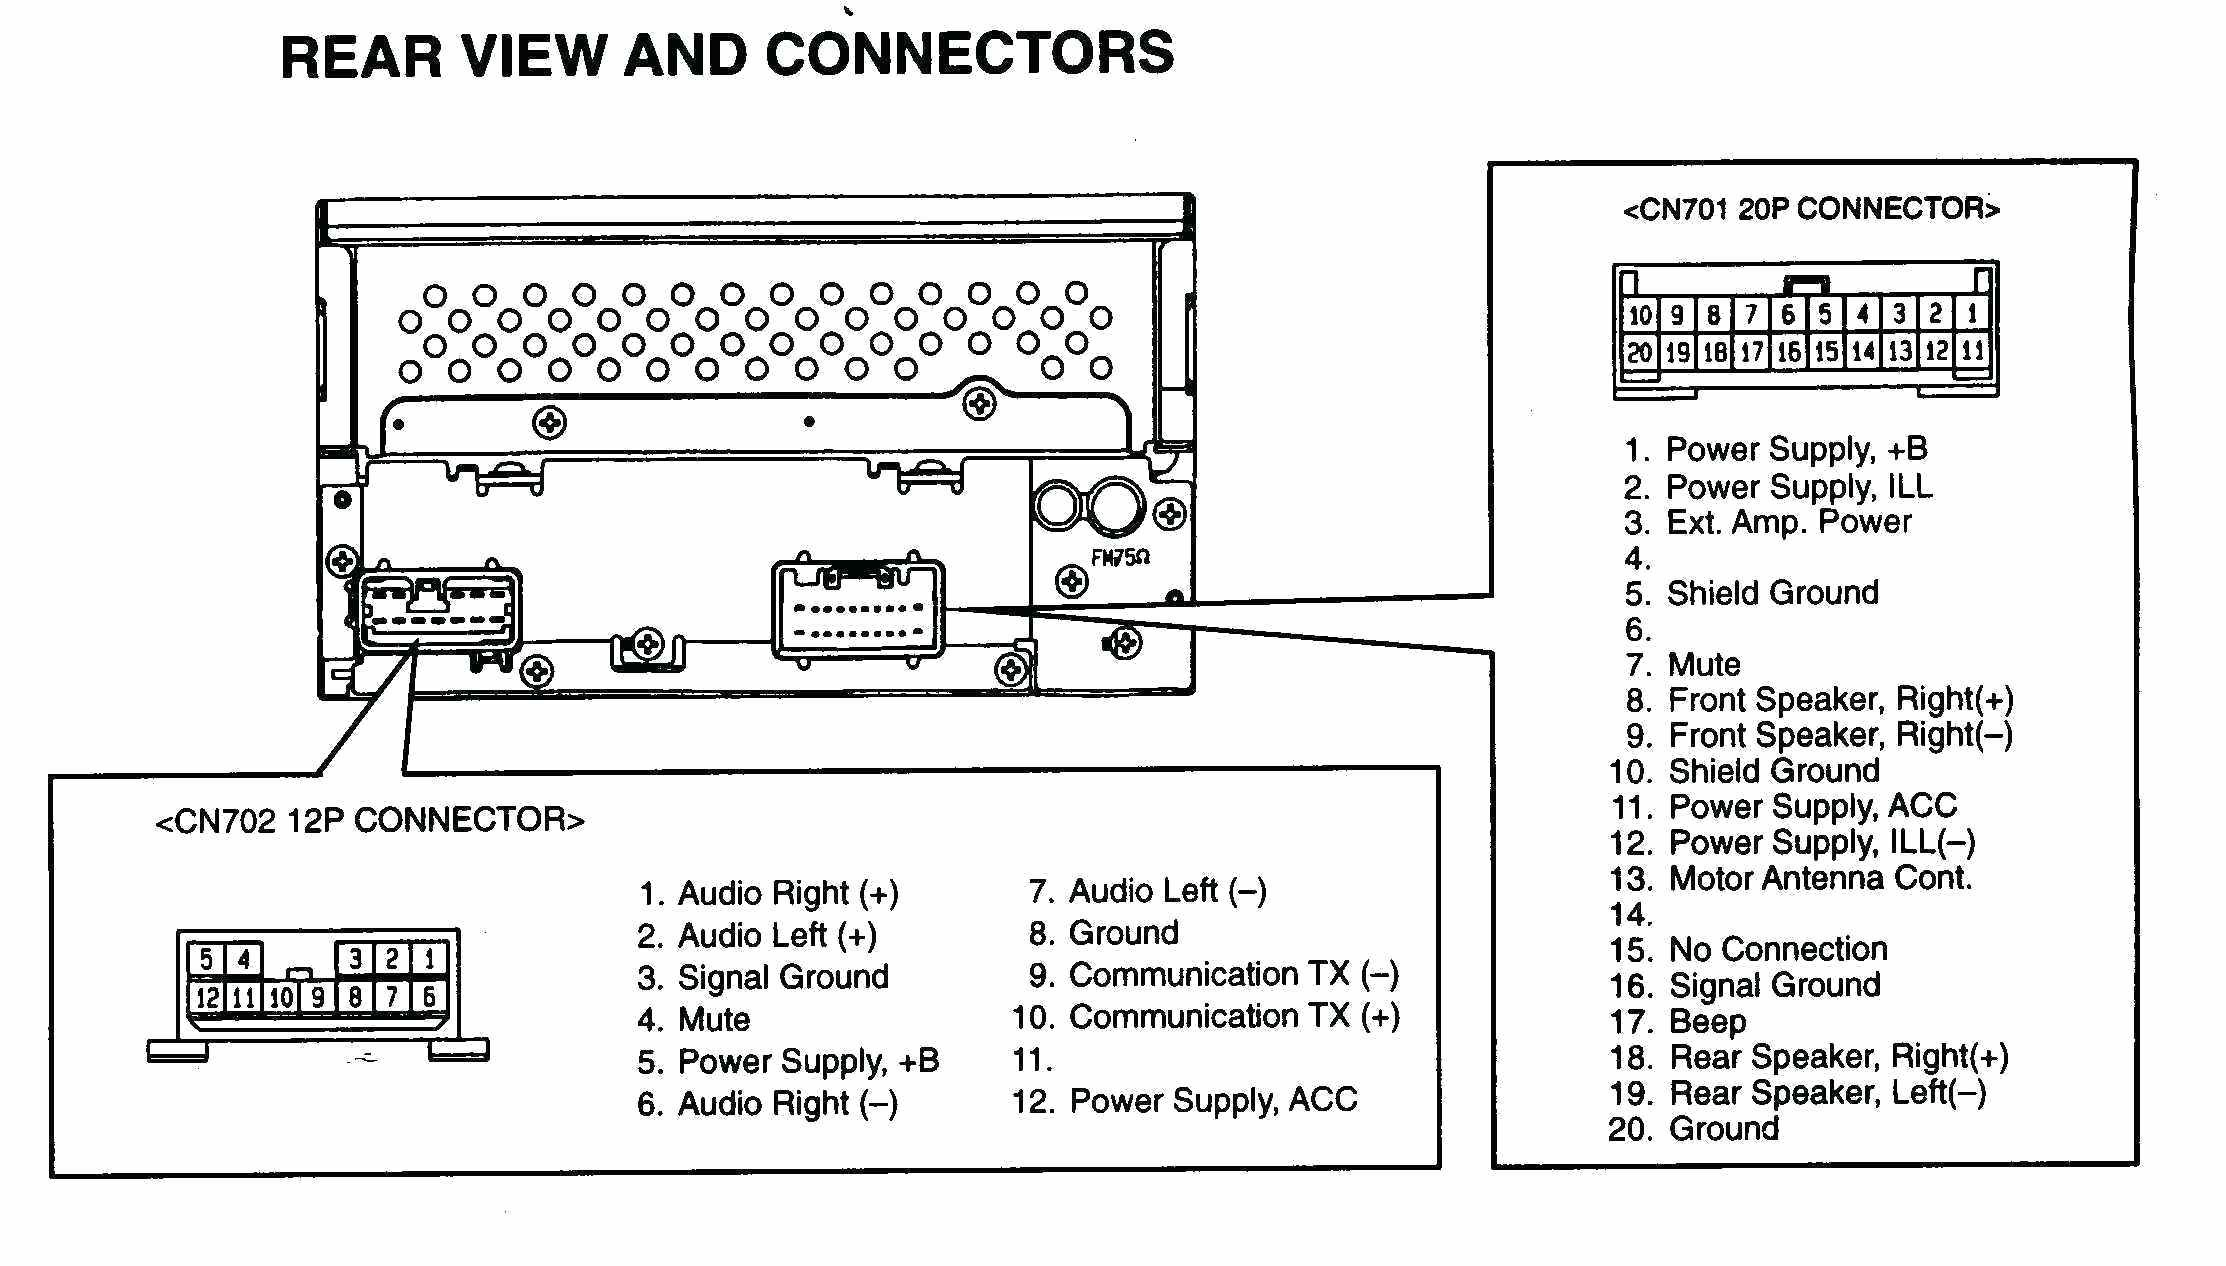 Car Stereo Wire Diagram New Stereo Wiring Diagram Diagram Of Car Stereo Wire Diagram